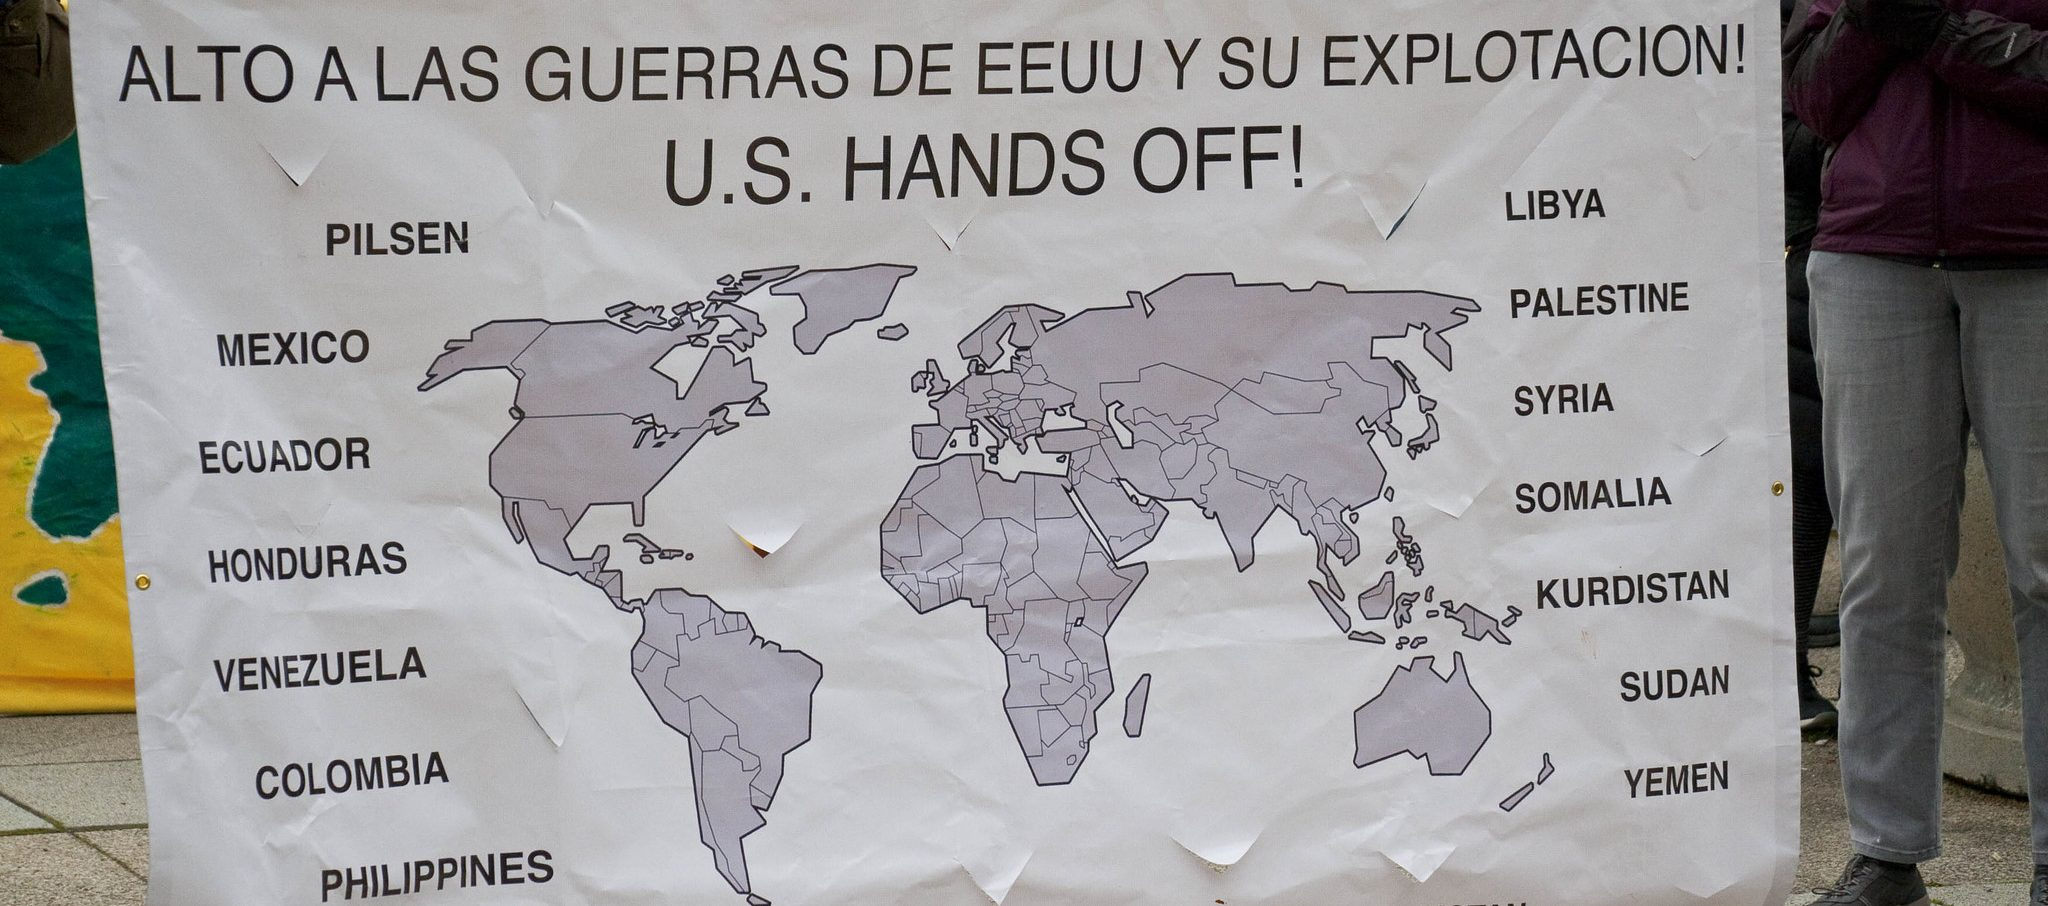 You Don't Hear About It But The U.S. Blockade Is Killing The Venezuelan People